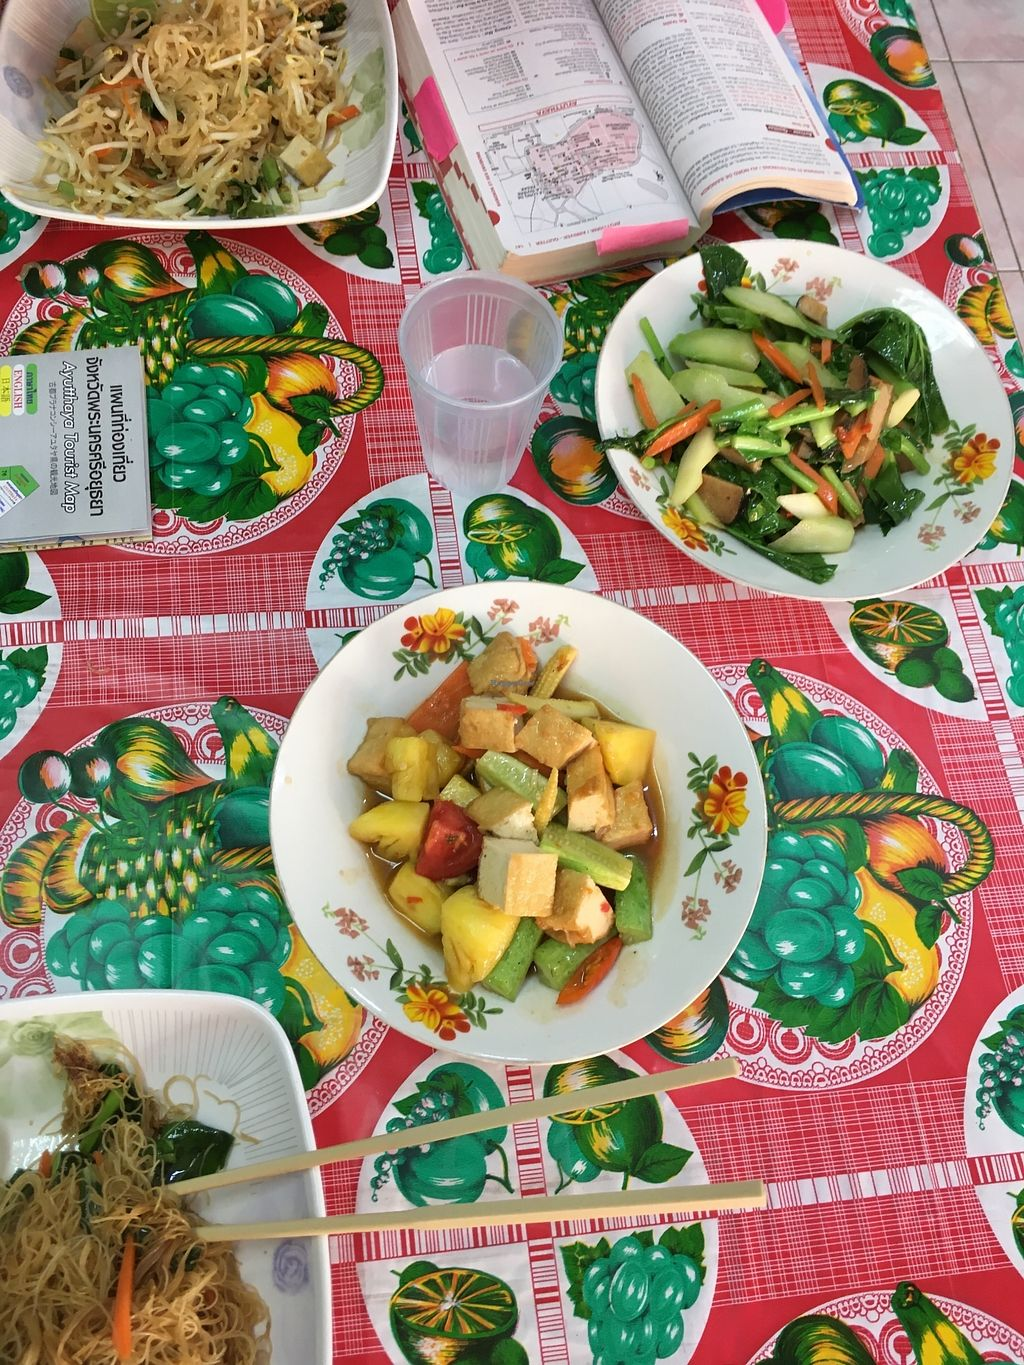 """Photo of Samrup Jay  by <a href=""""/members/profile/_zelisa"""">_zelisa</a> <br/>Stir fried vegetables and sweet/sour tofu with vegetables and pineapple  <br/> November 26, 2017  - <a href='/contact/abuse/image/21054/329401'>Report</a>"""